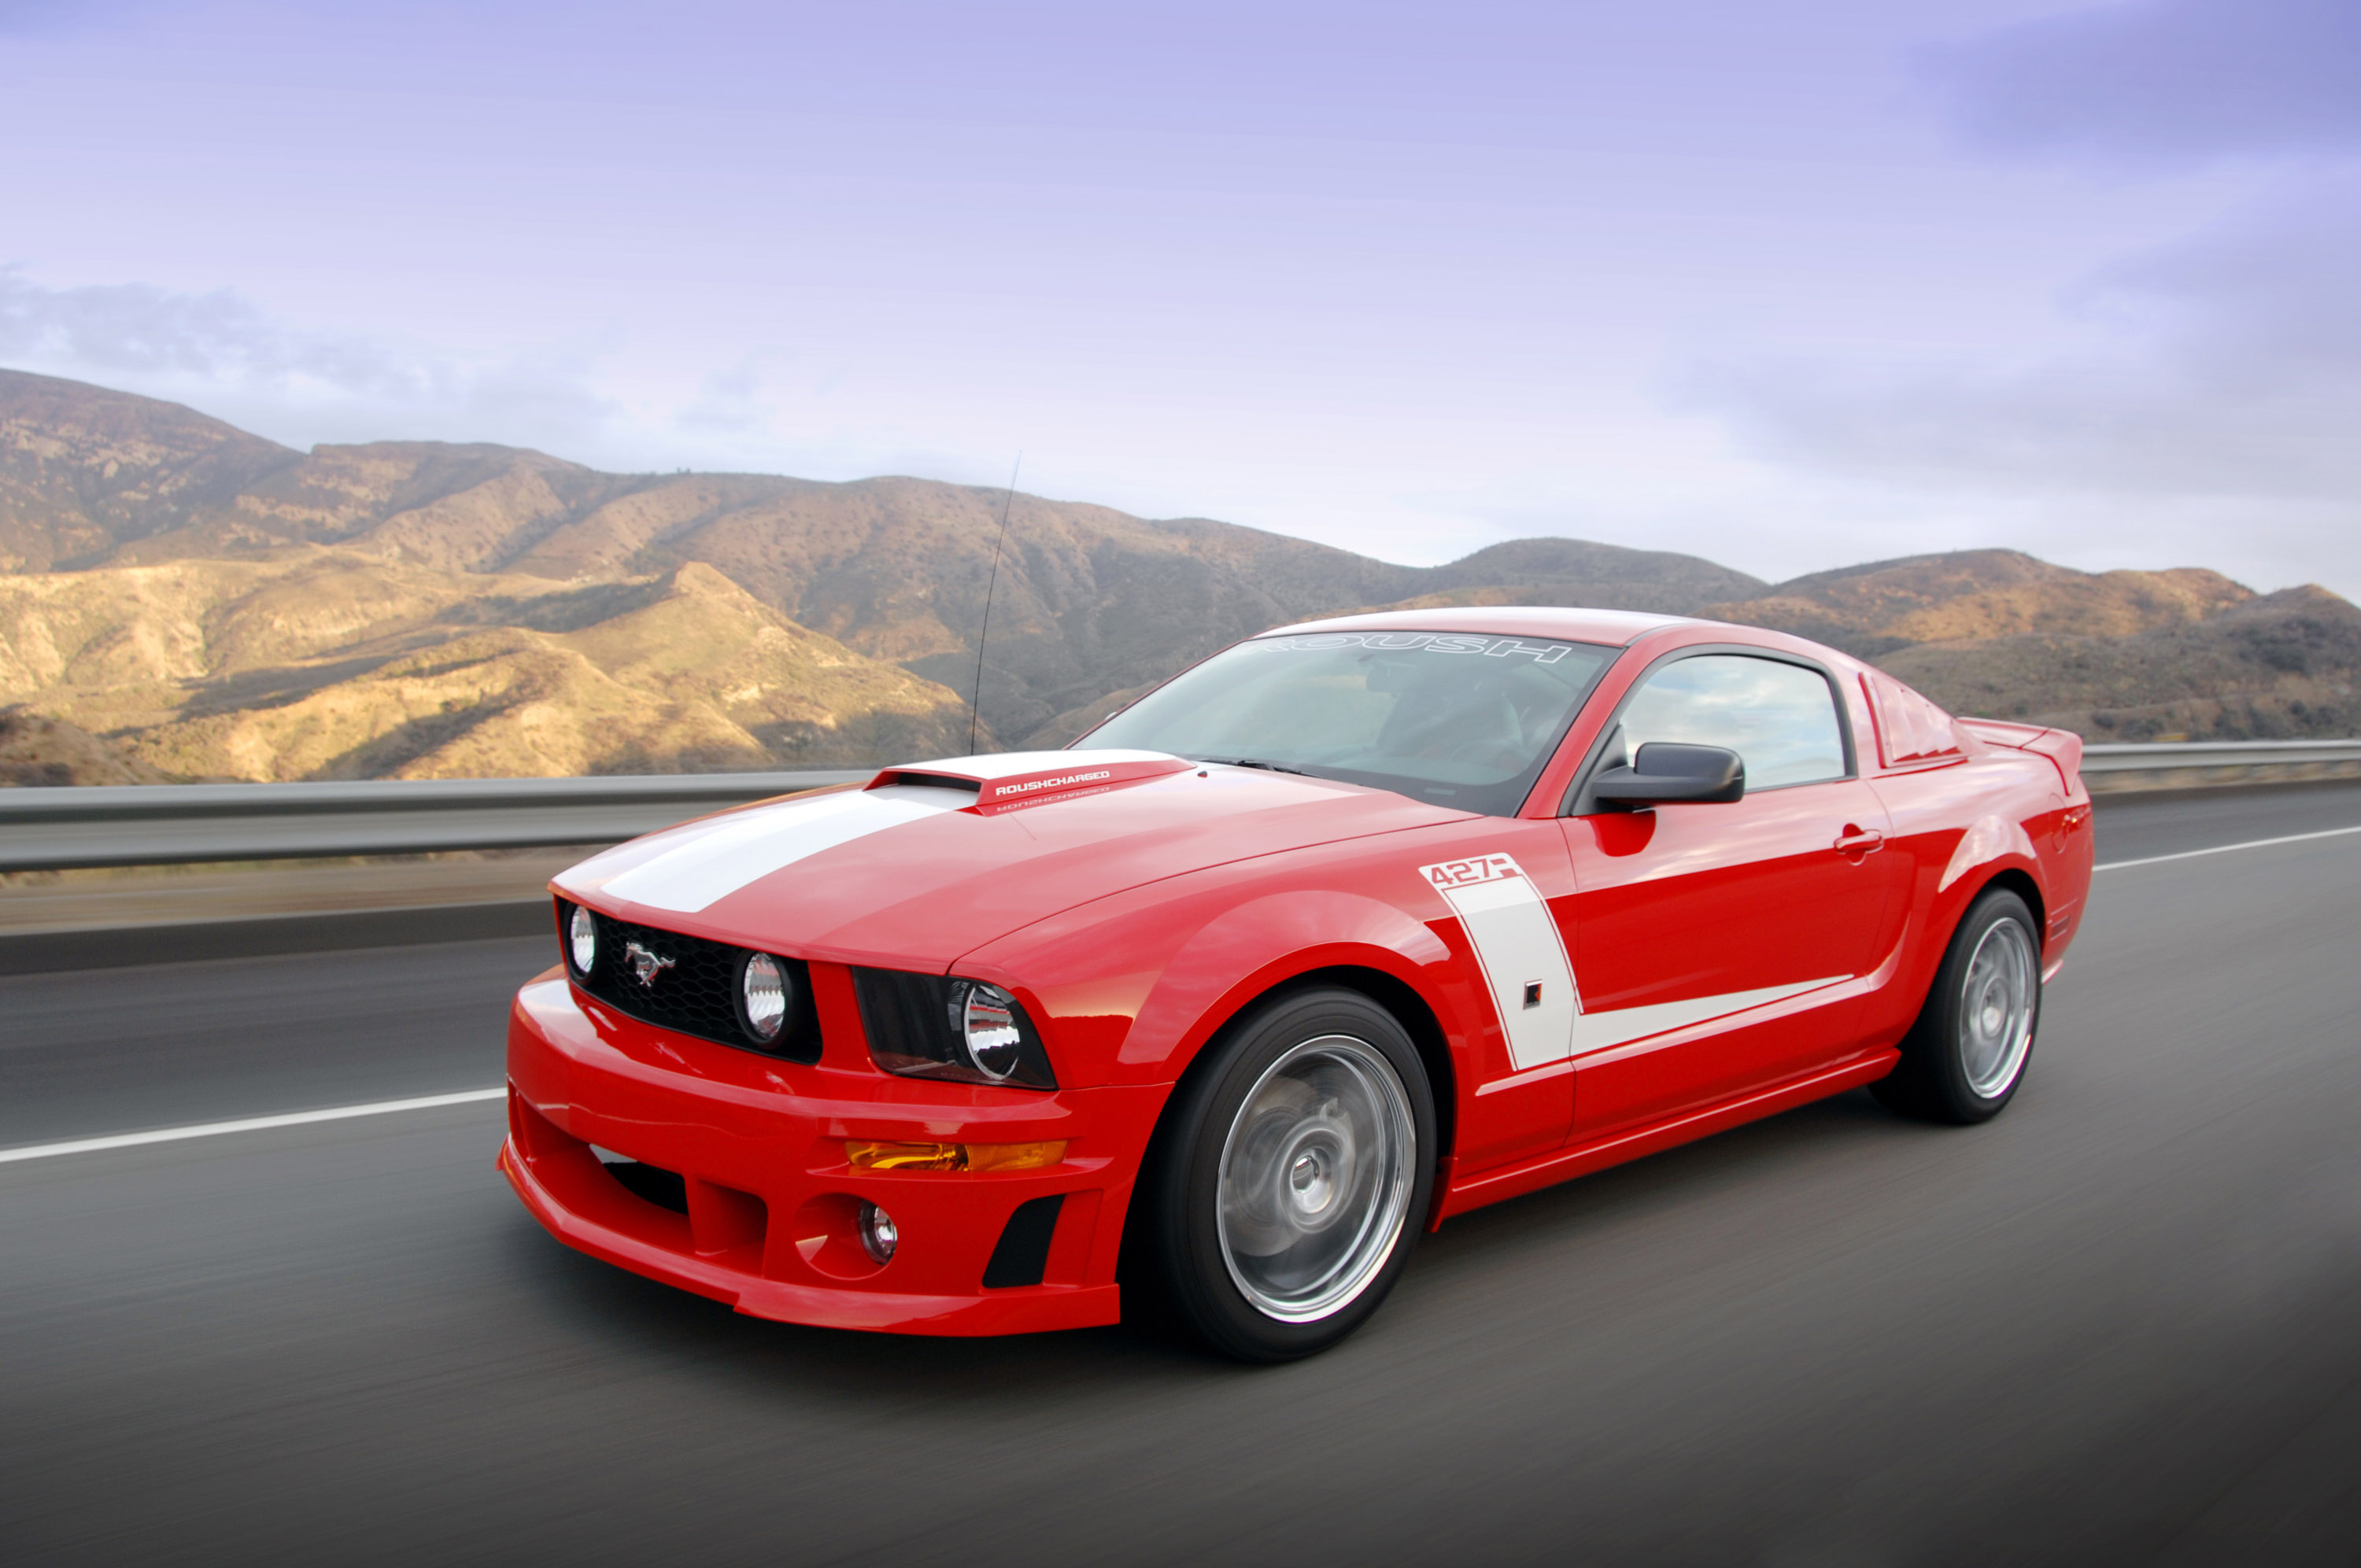 Ford Mustang Shelby GT500 Wallpapers Pictures Images